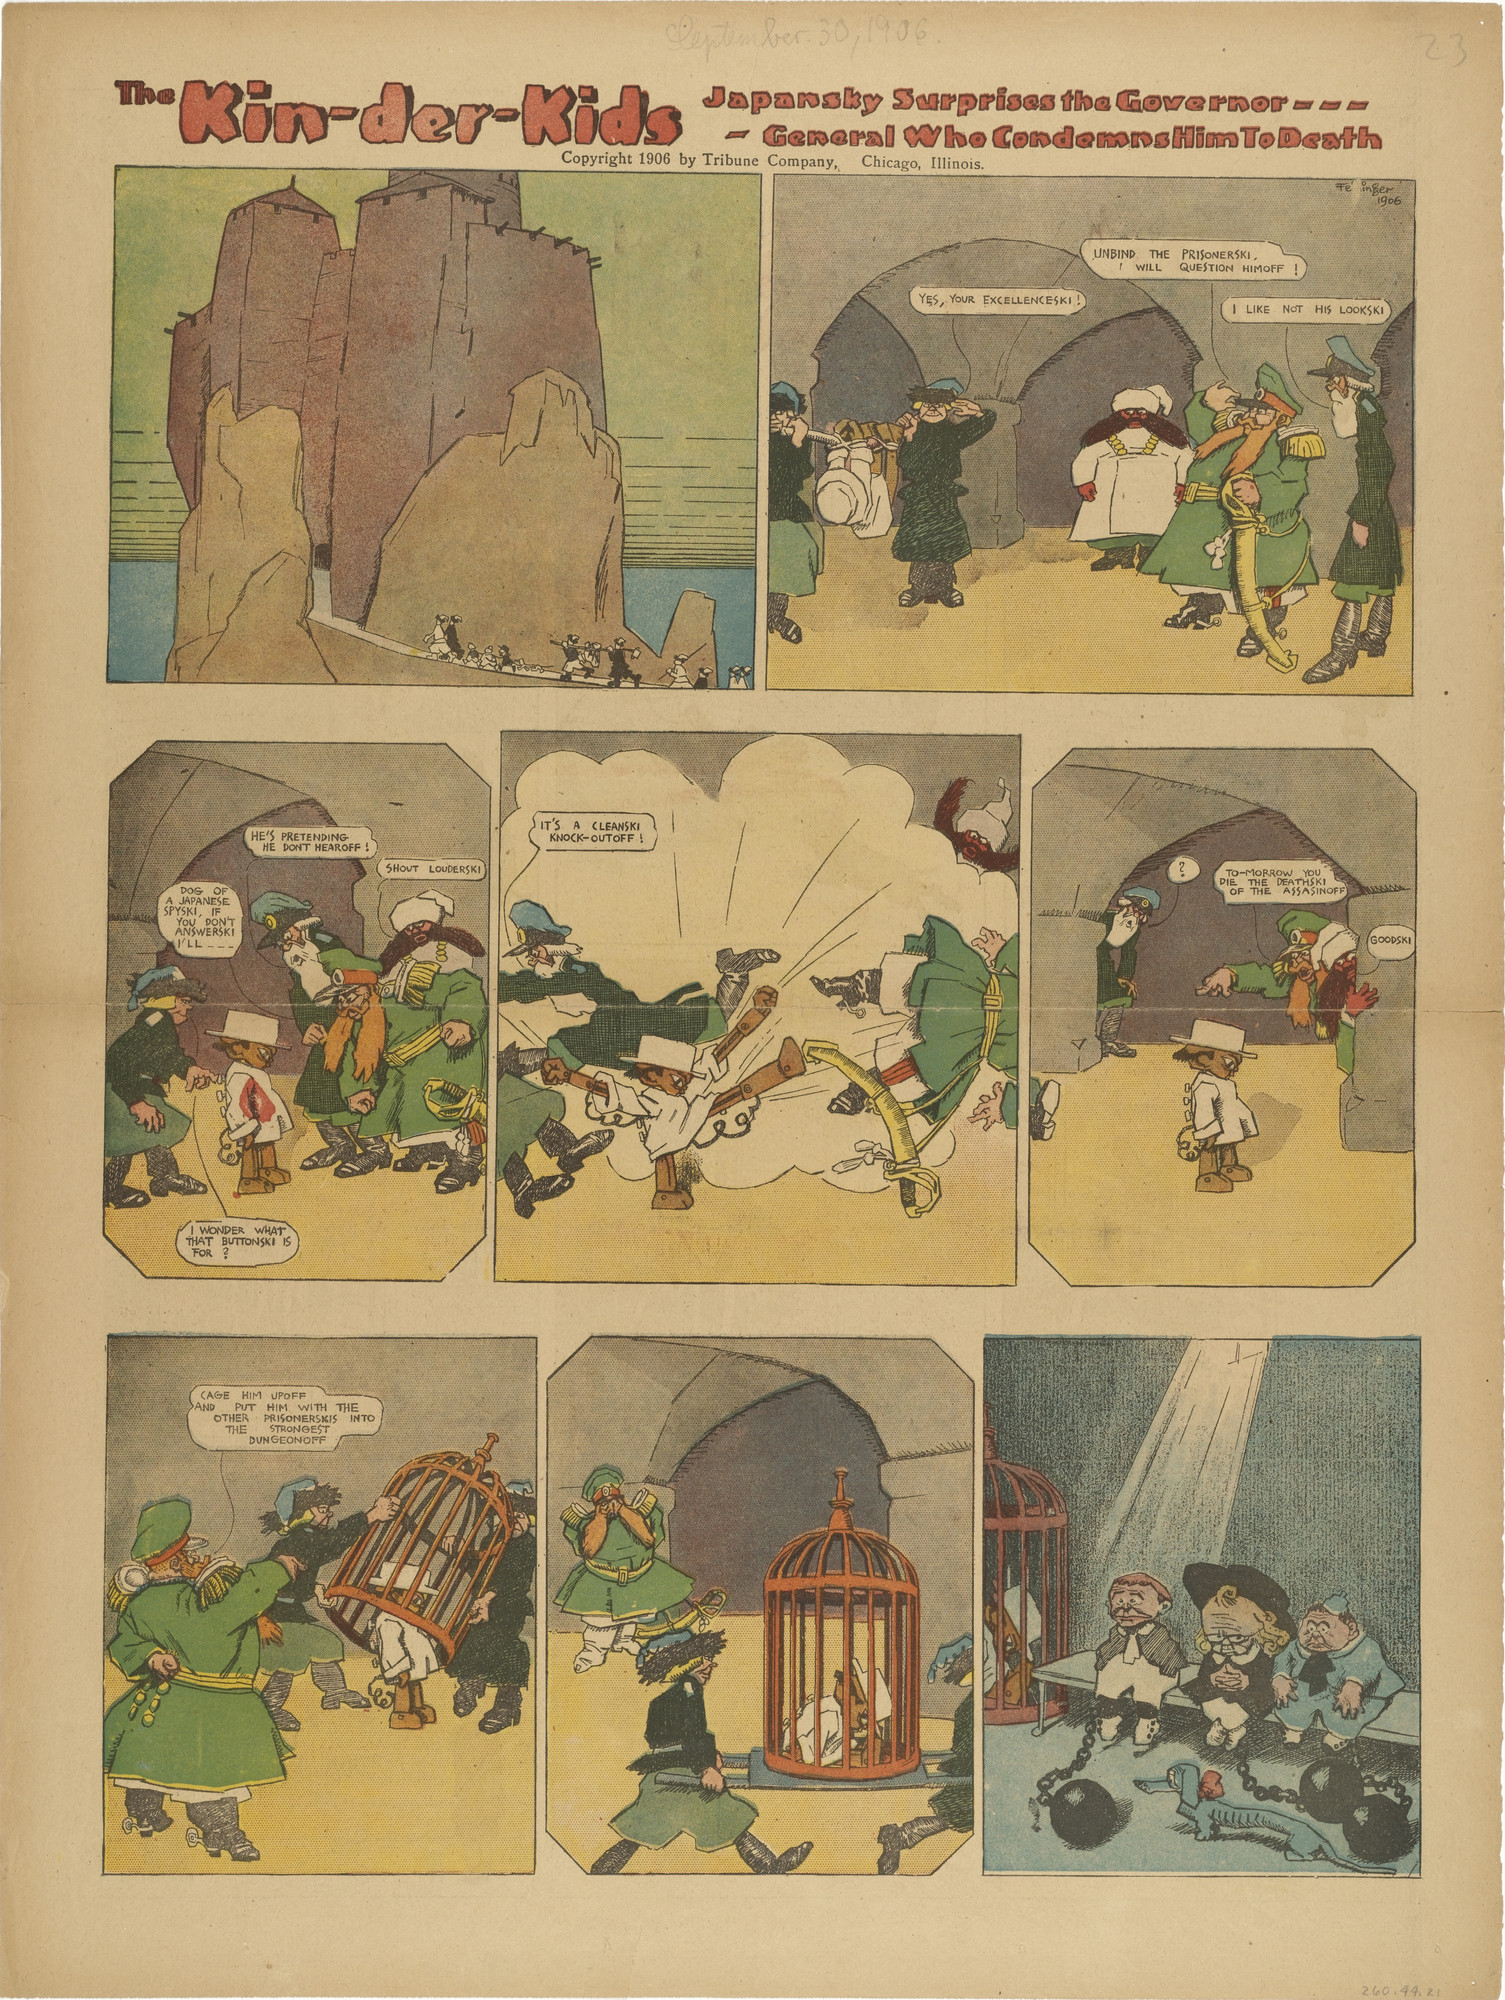 Lyonel Feininger. The Kin-der-Kids: Japansky Surprises the Governor General who Condemns him to Death from The Chicago Sunday Tribune. (September 30) 1906